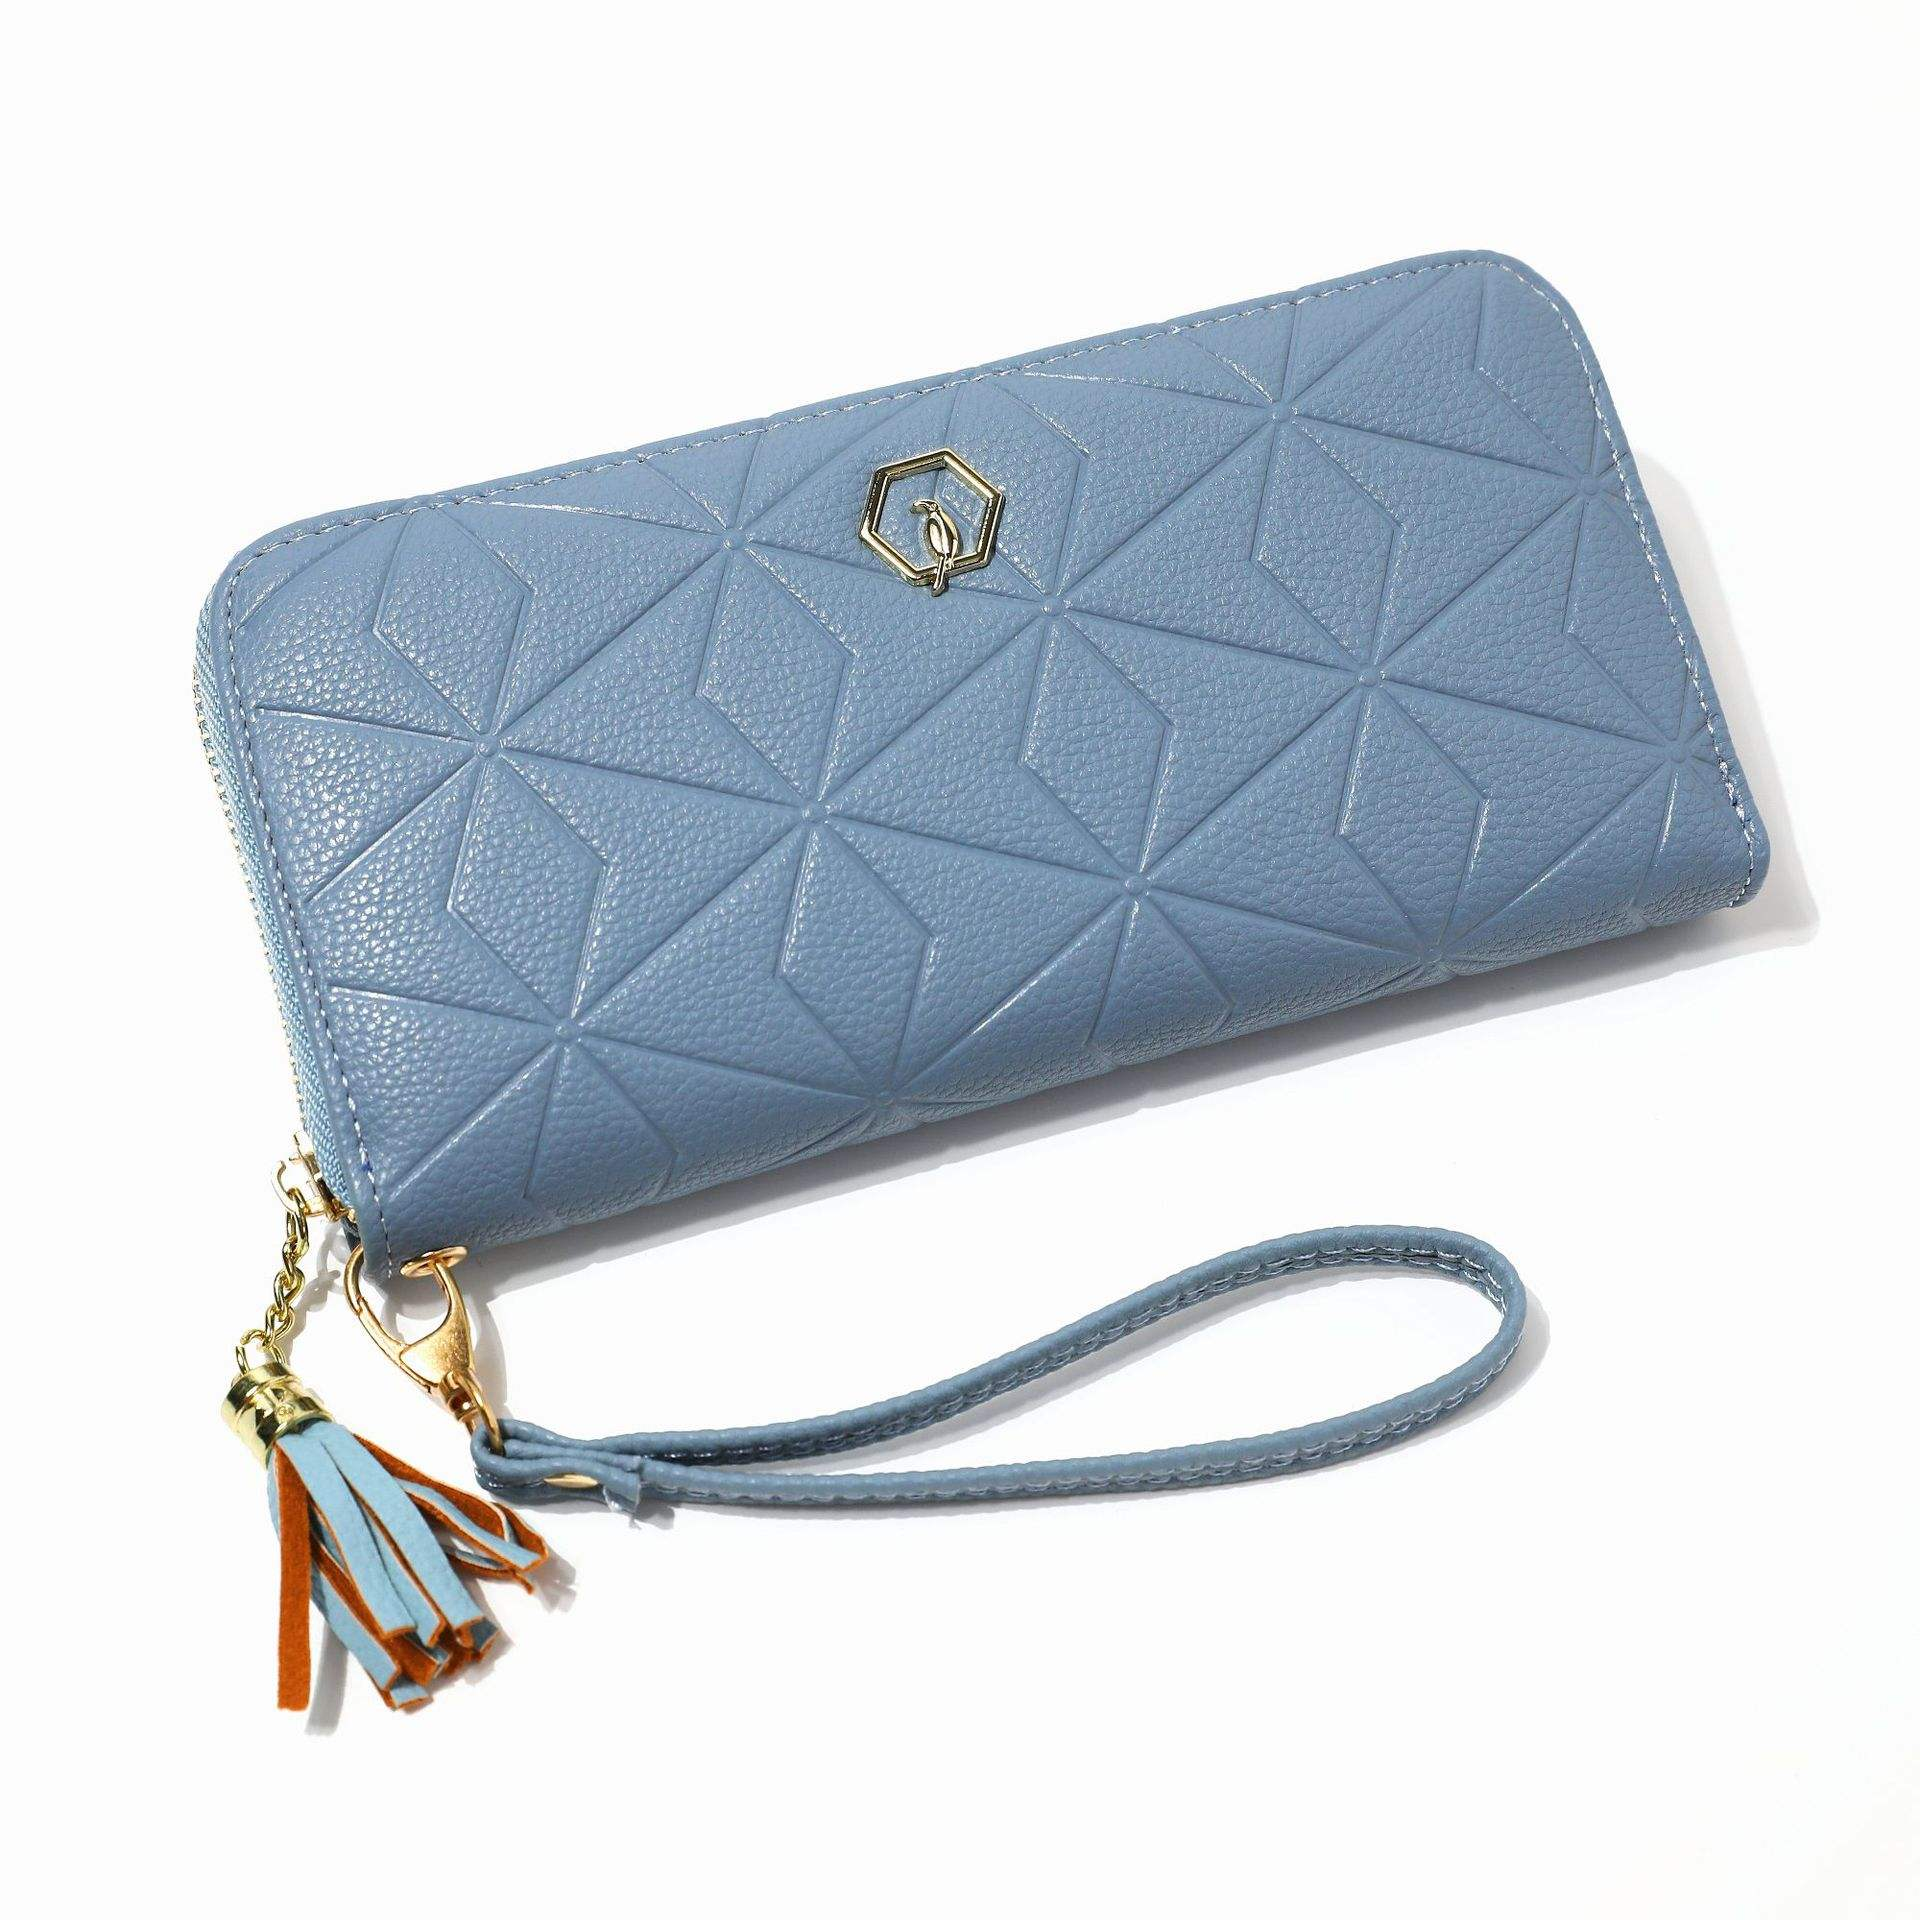 FD1039 Best Seller Wallet Bifold 2019 Long Designs Tassel Zipper Diamonds Shape Womens Wallets